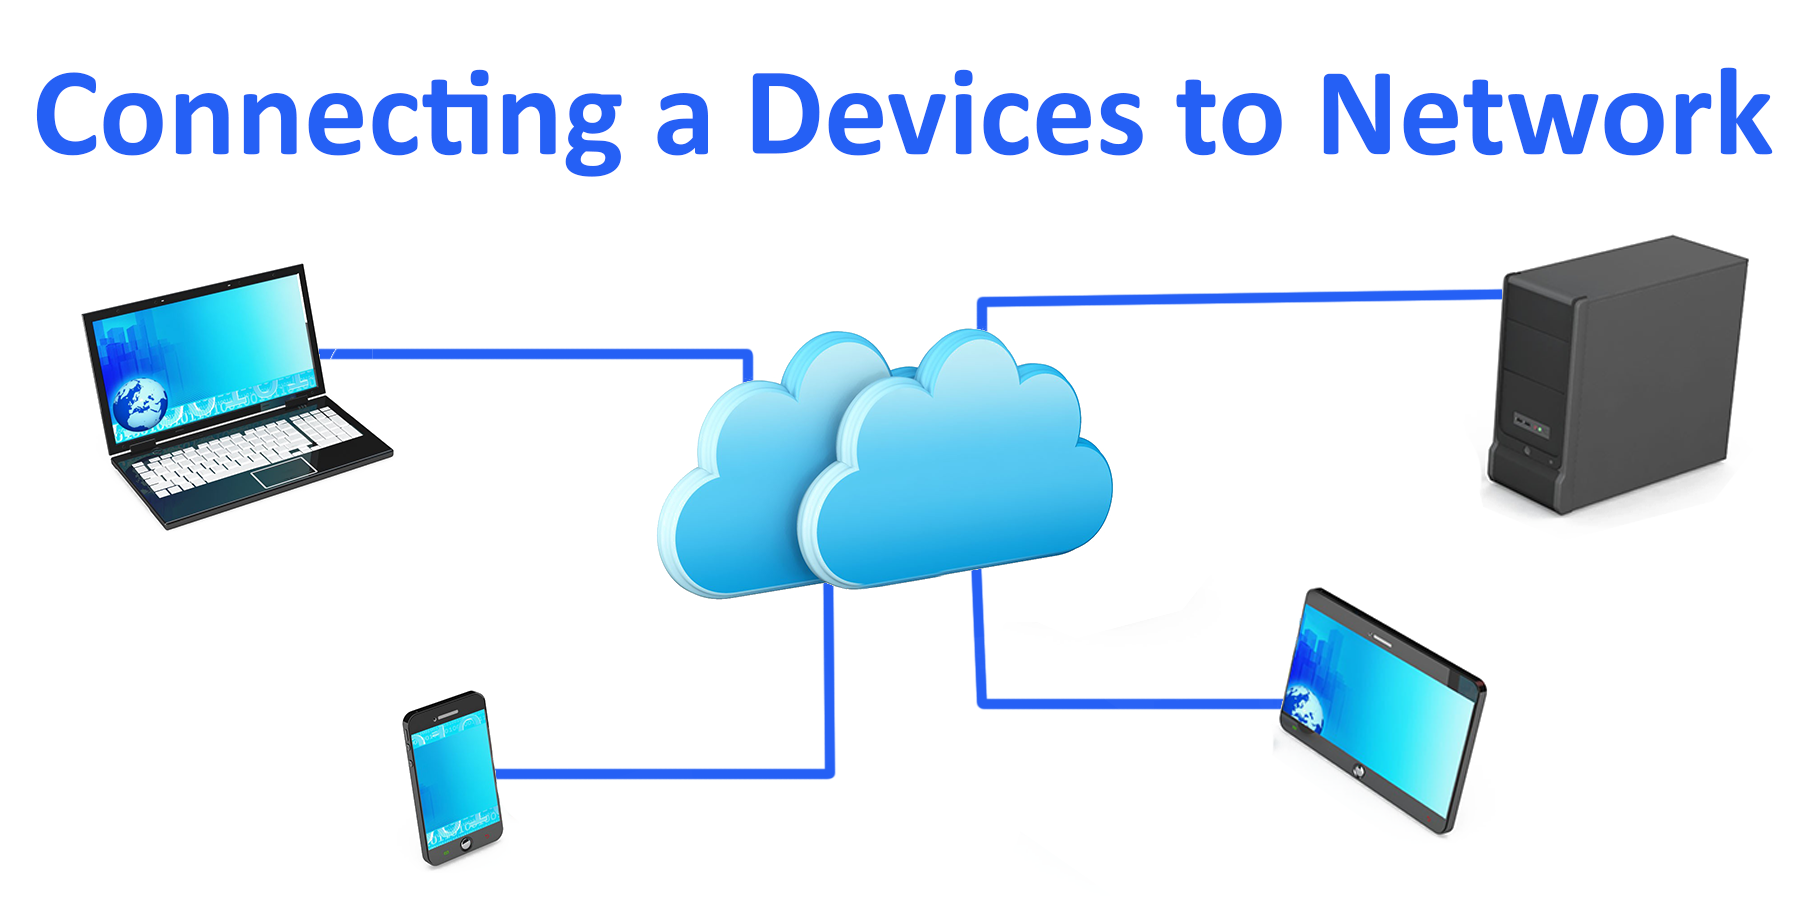 Connecting a Device to the Network